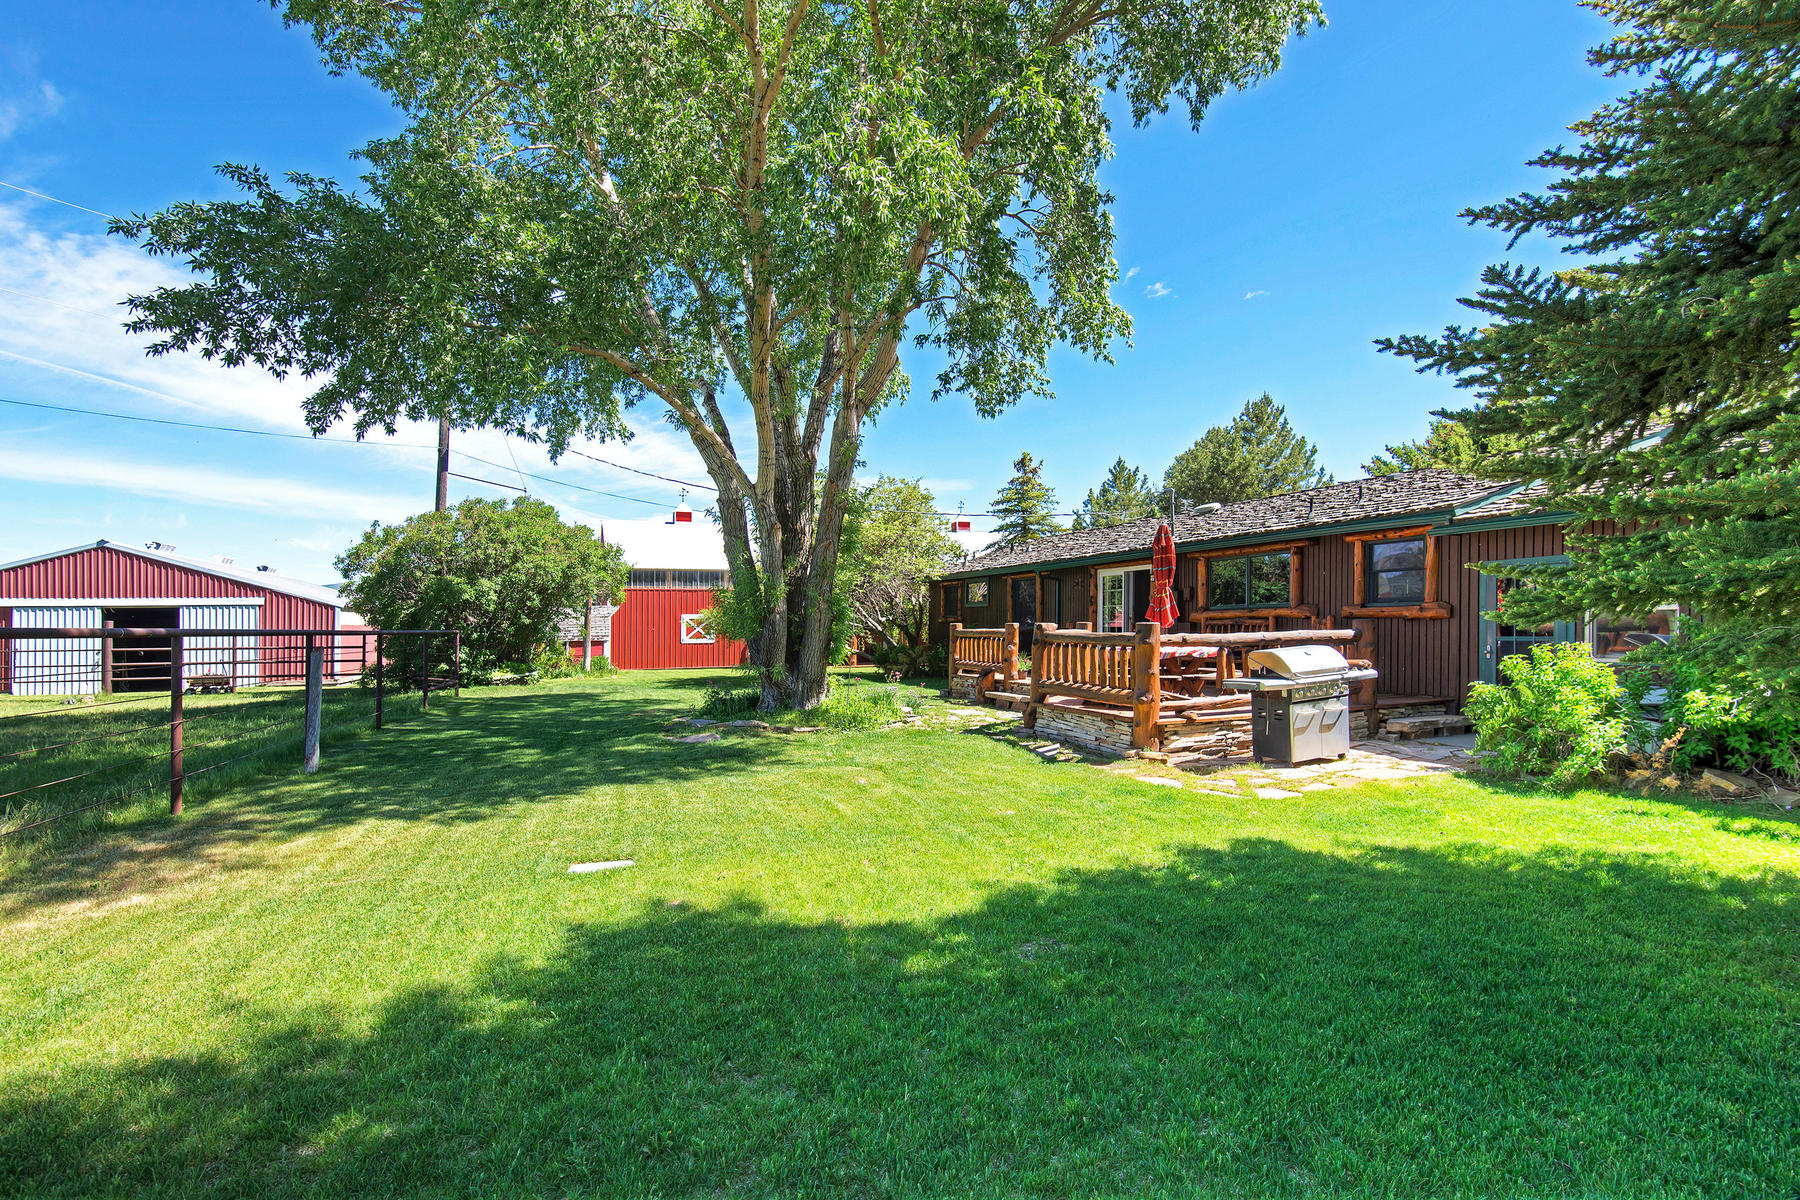 Maison unifamiliale pour l Vente à Heartland equestrian property off of Old Ranch Road with wide open spaces! 4615 N 400 W Park City, Utah, 84098 États-Unis